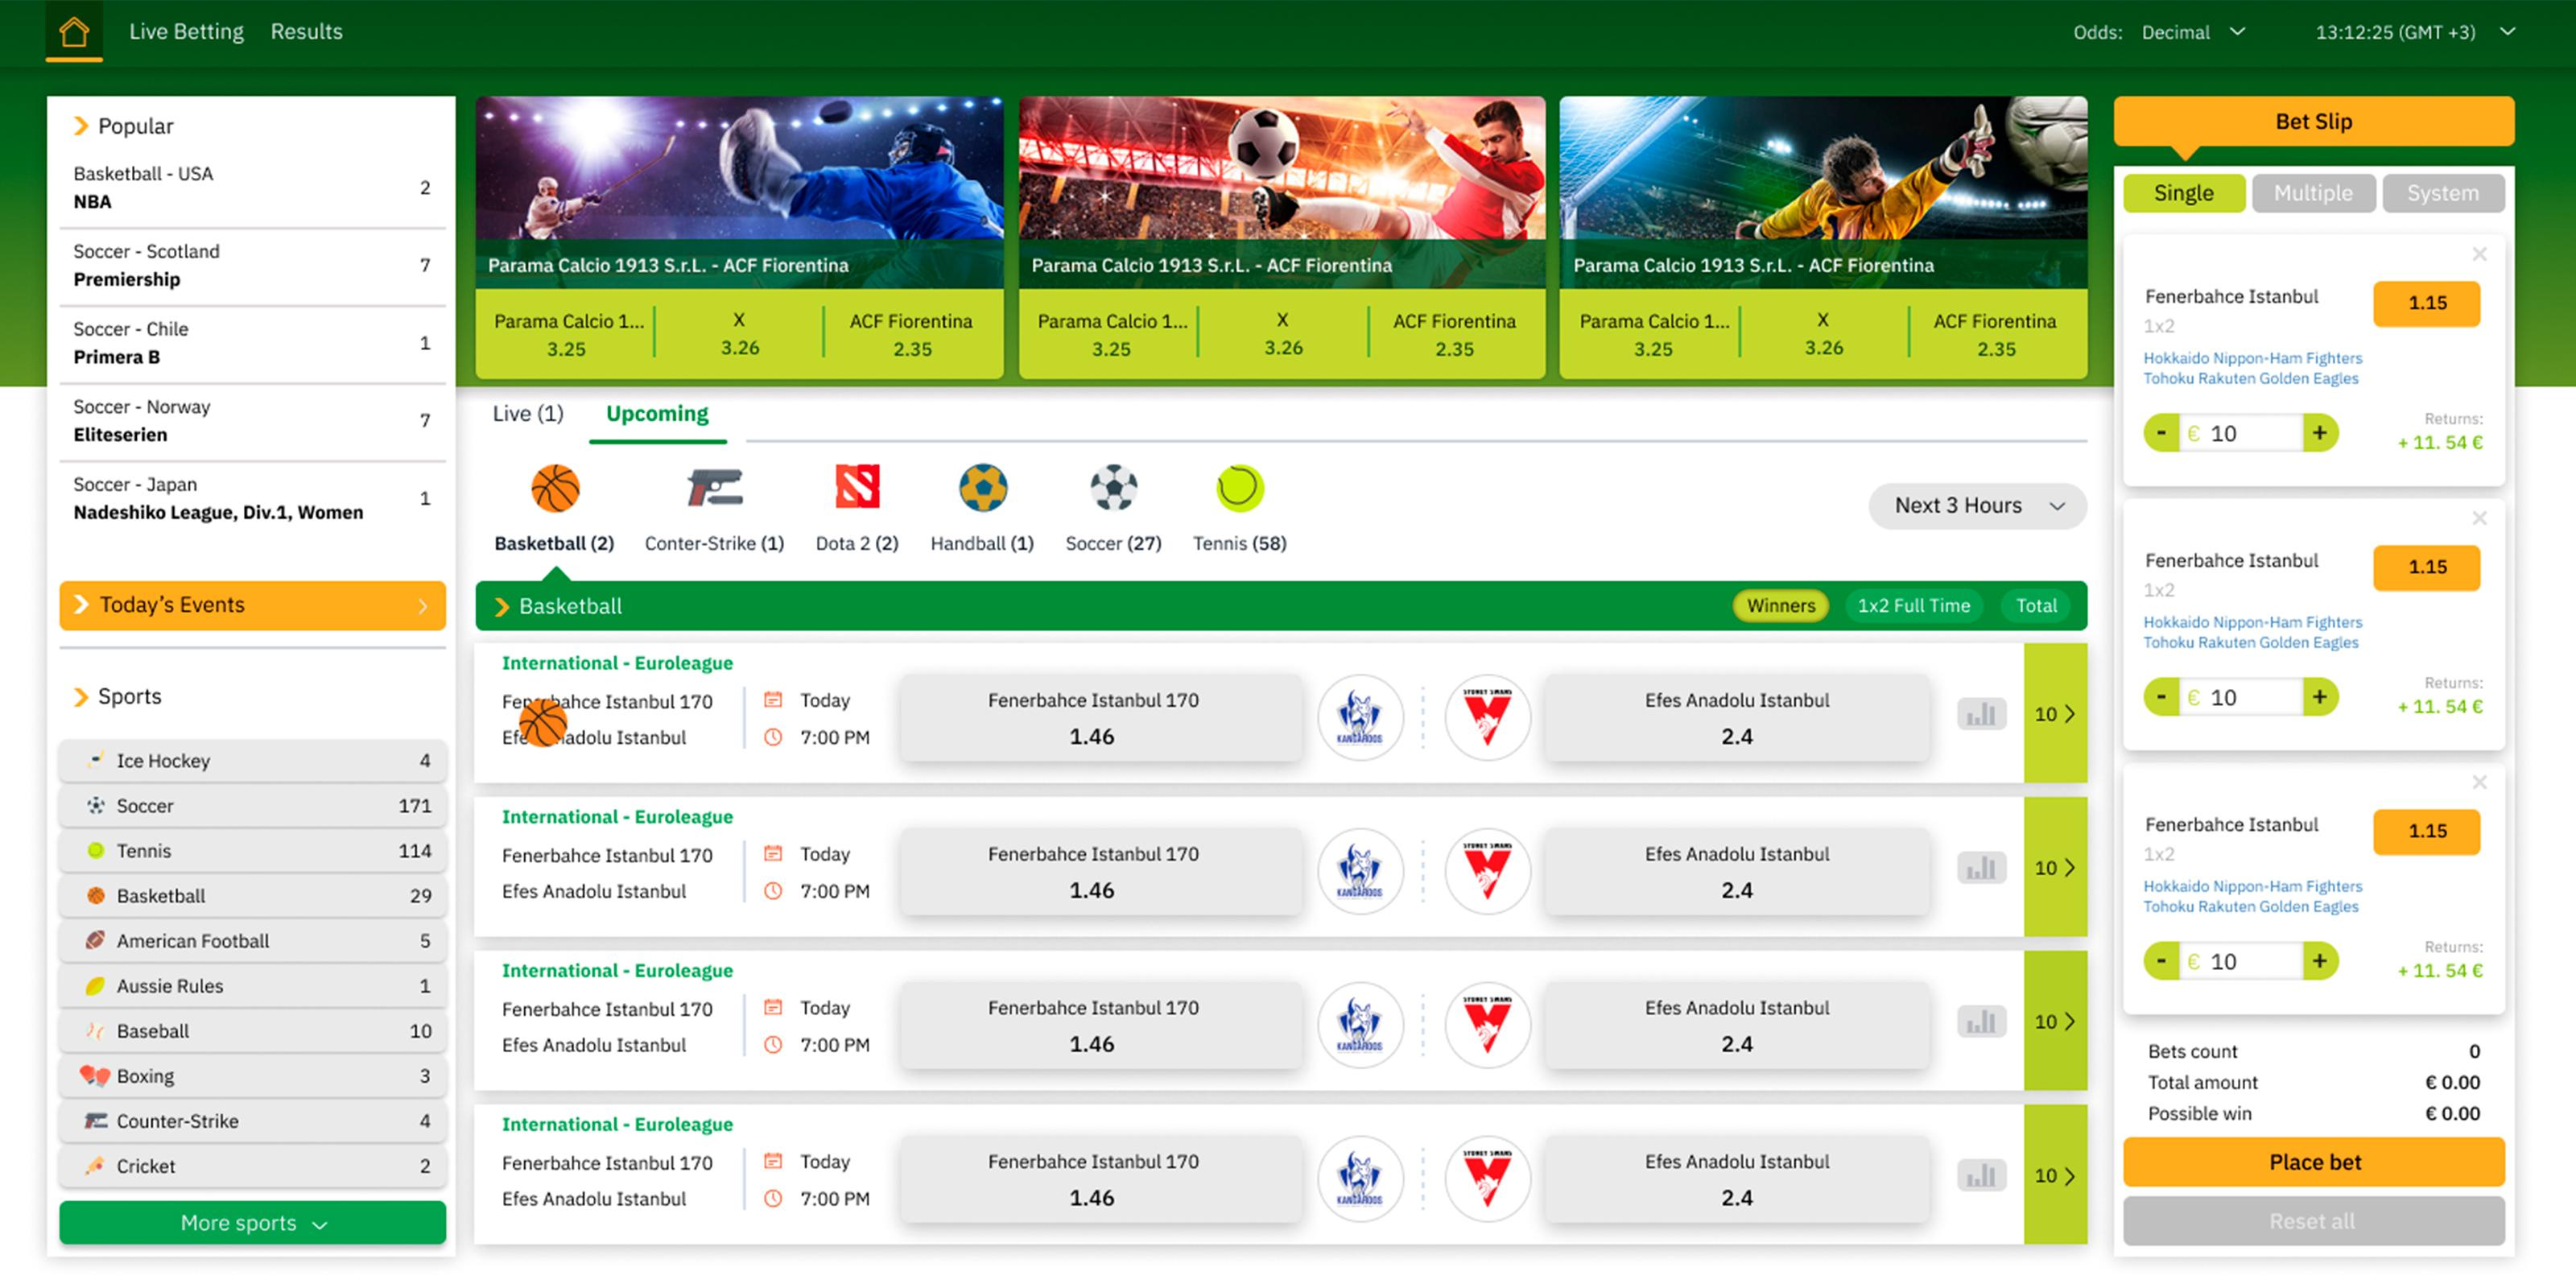 Sb betting software for sale league of legends betting uk racing